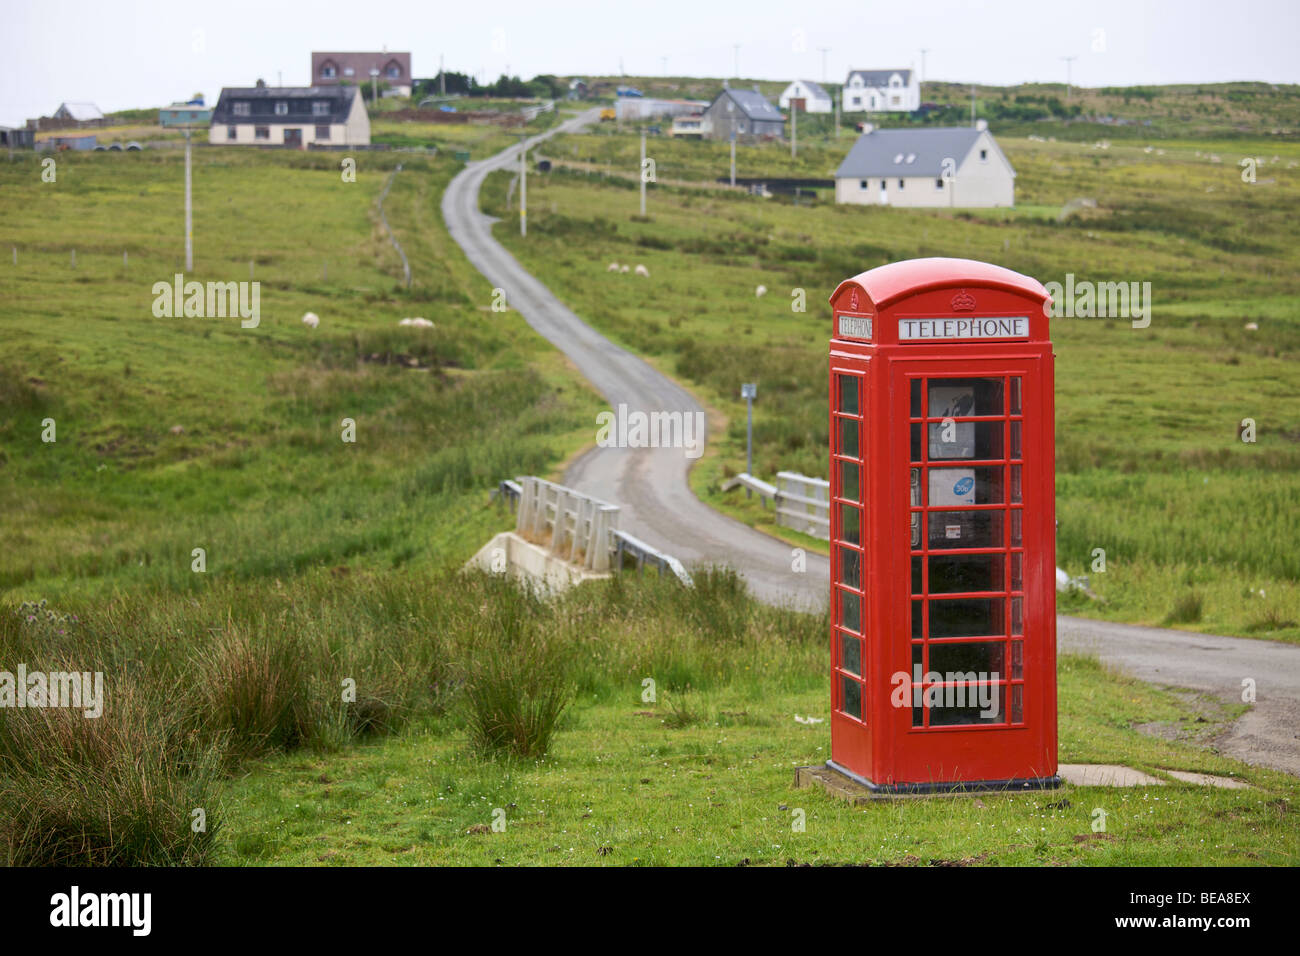 Telephone box in the Isle of Skye, Scotland - Stock Image